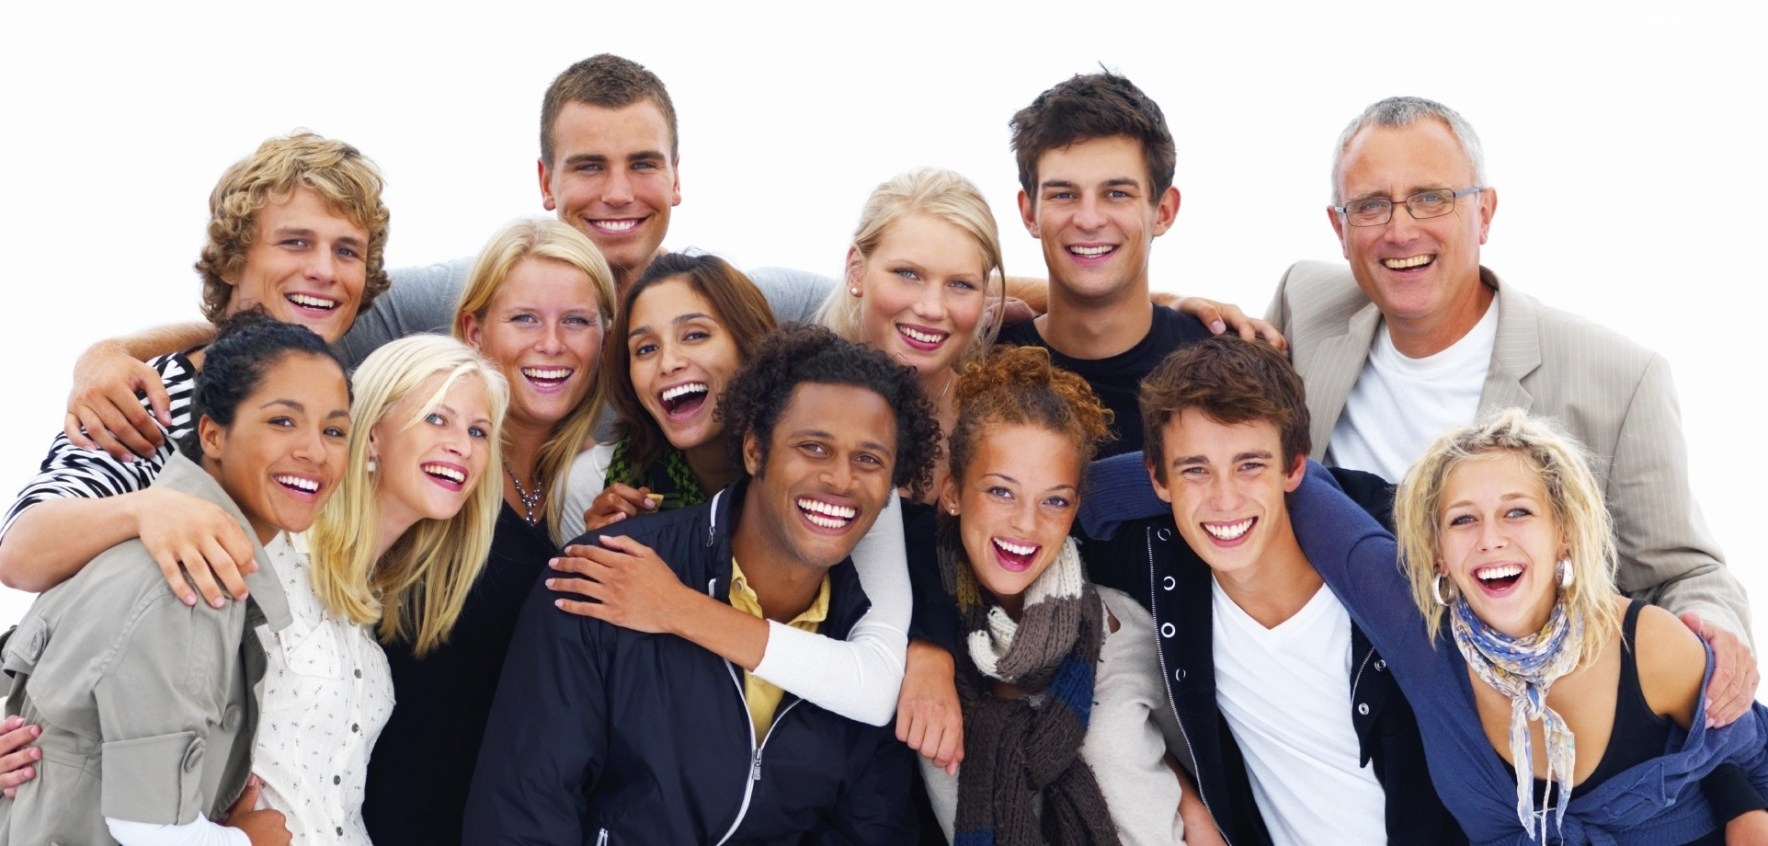 background-of-people-smiling-4184